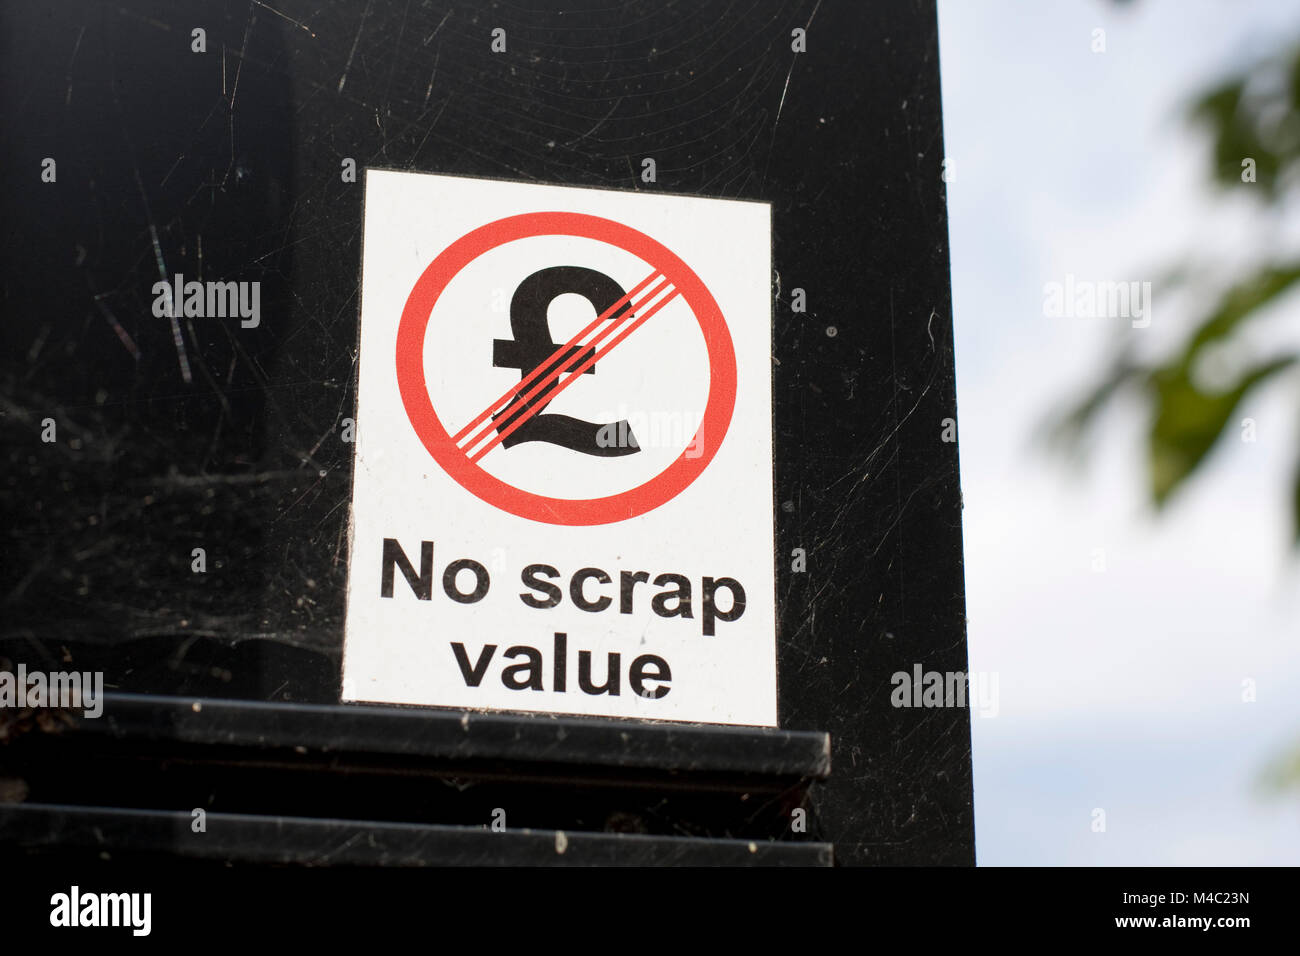 'No scrap value' notices on the back of road signs in Hackney - Stock Image